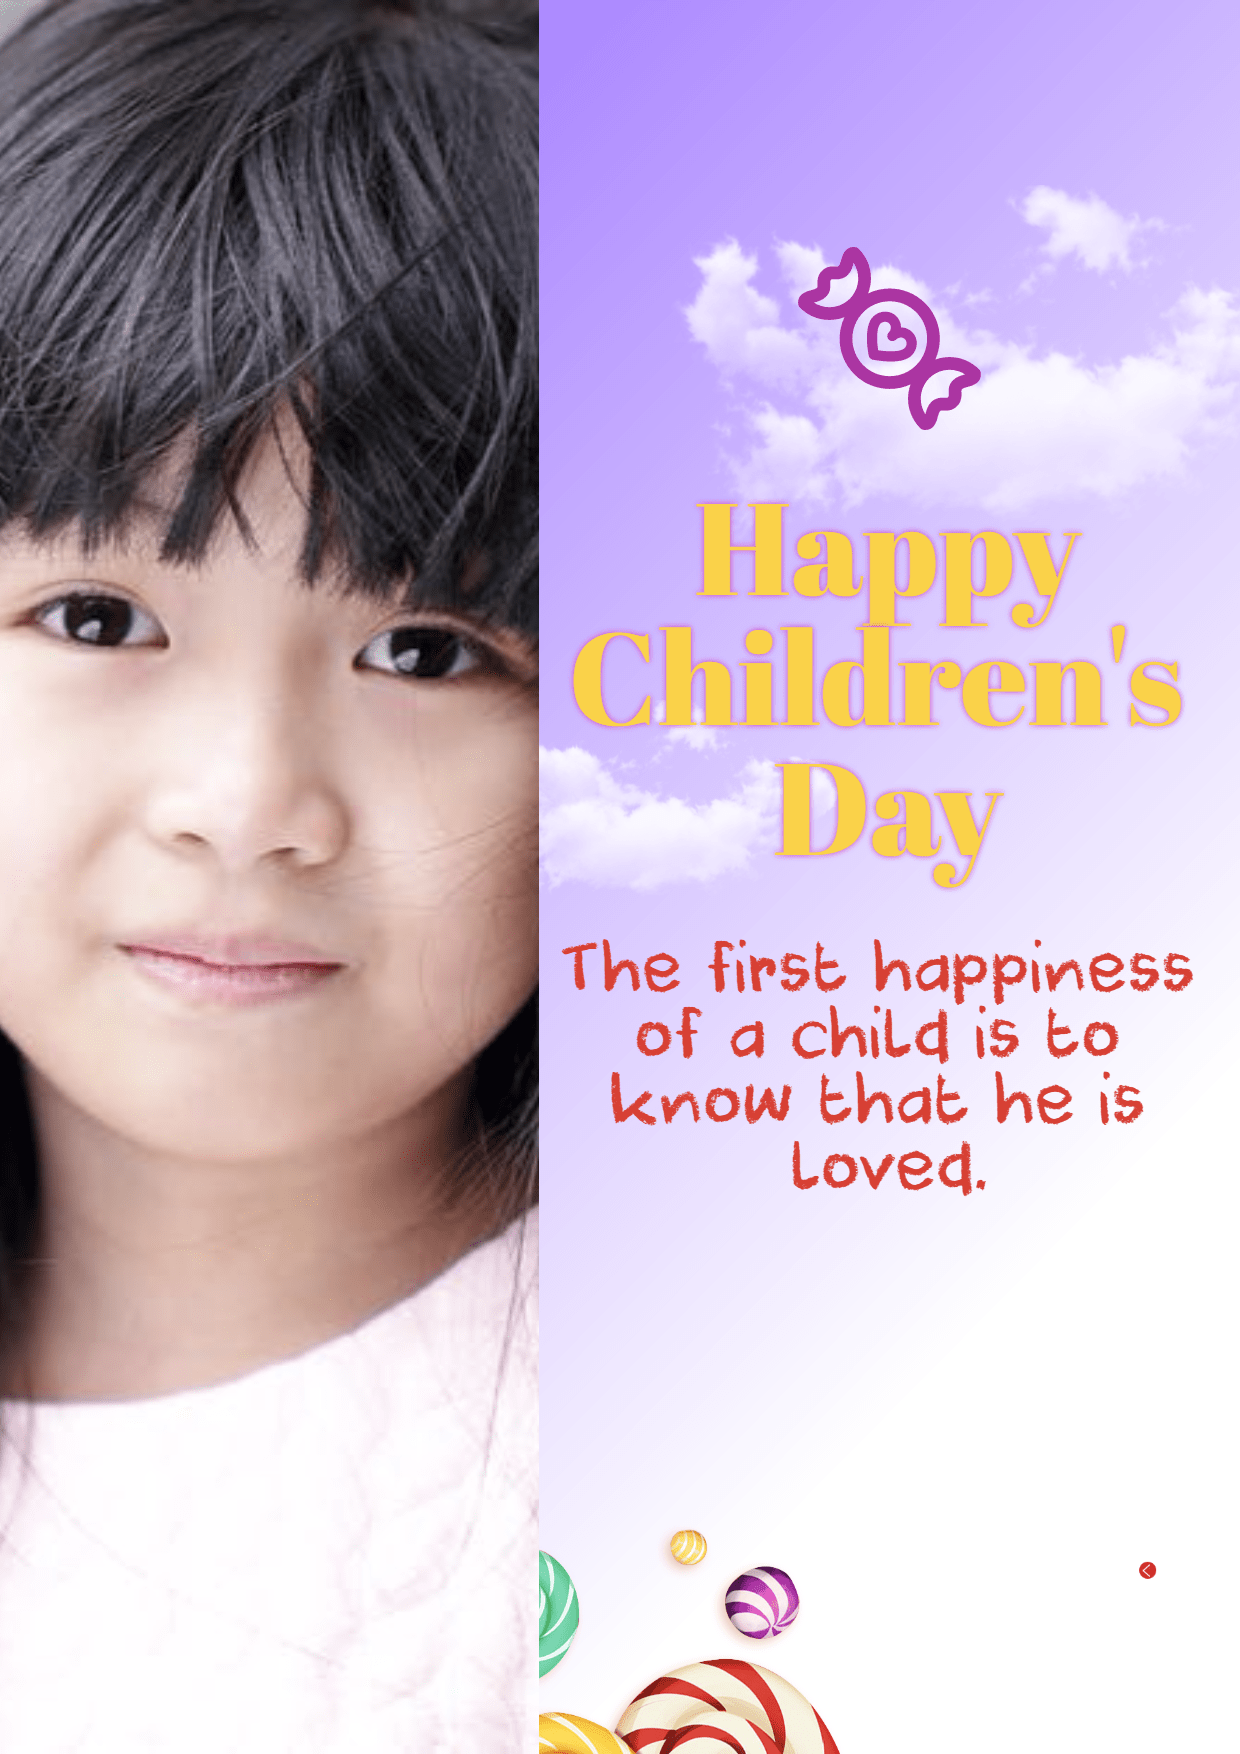 Face,                Nose,                Beauty,                Skin,                Head,                Children,                Internationalchildrenday,                Love,                Toys,                Childrensday,                Anniversary,                Candy,                White,                 Free Image